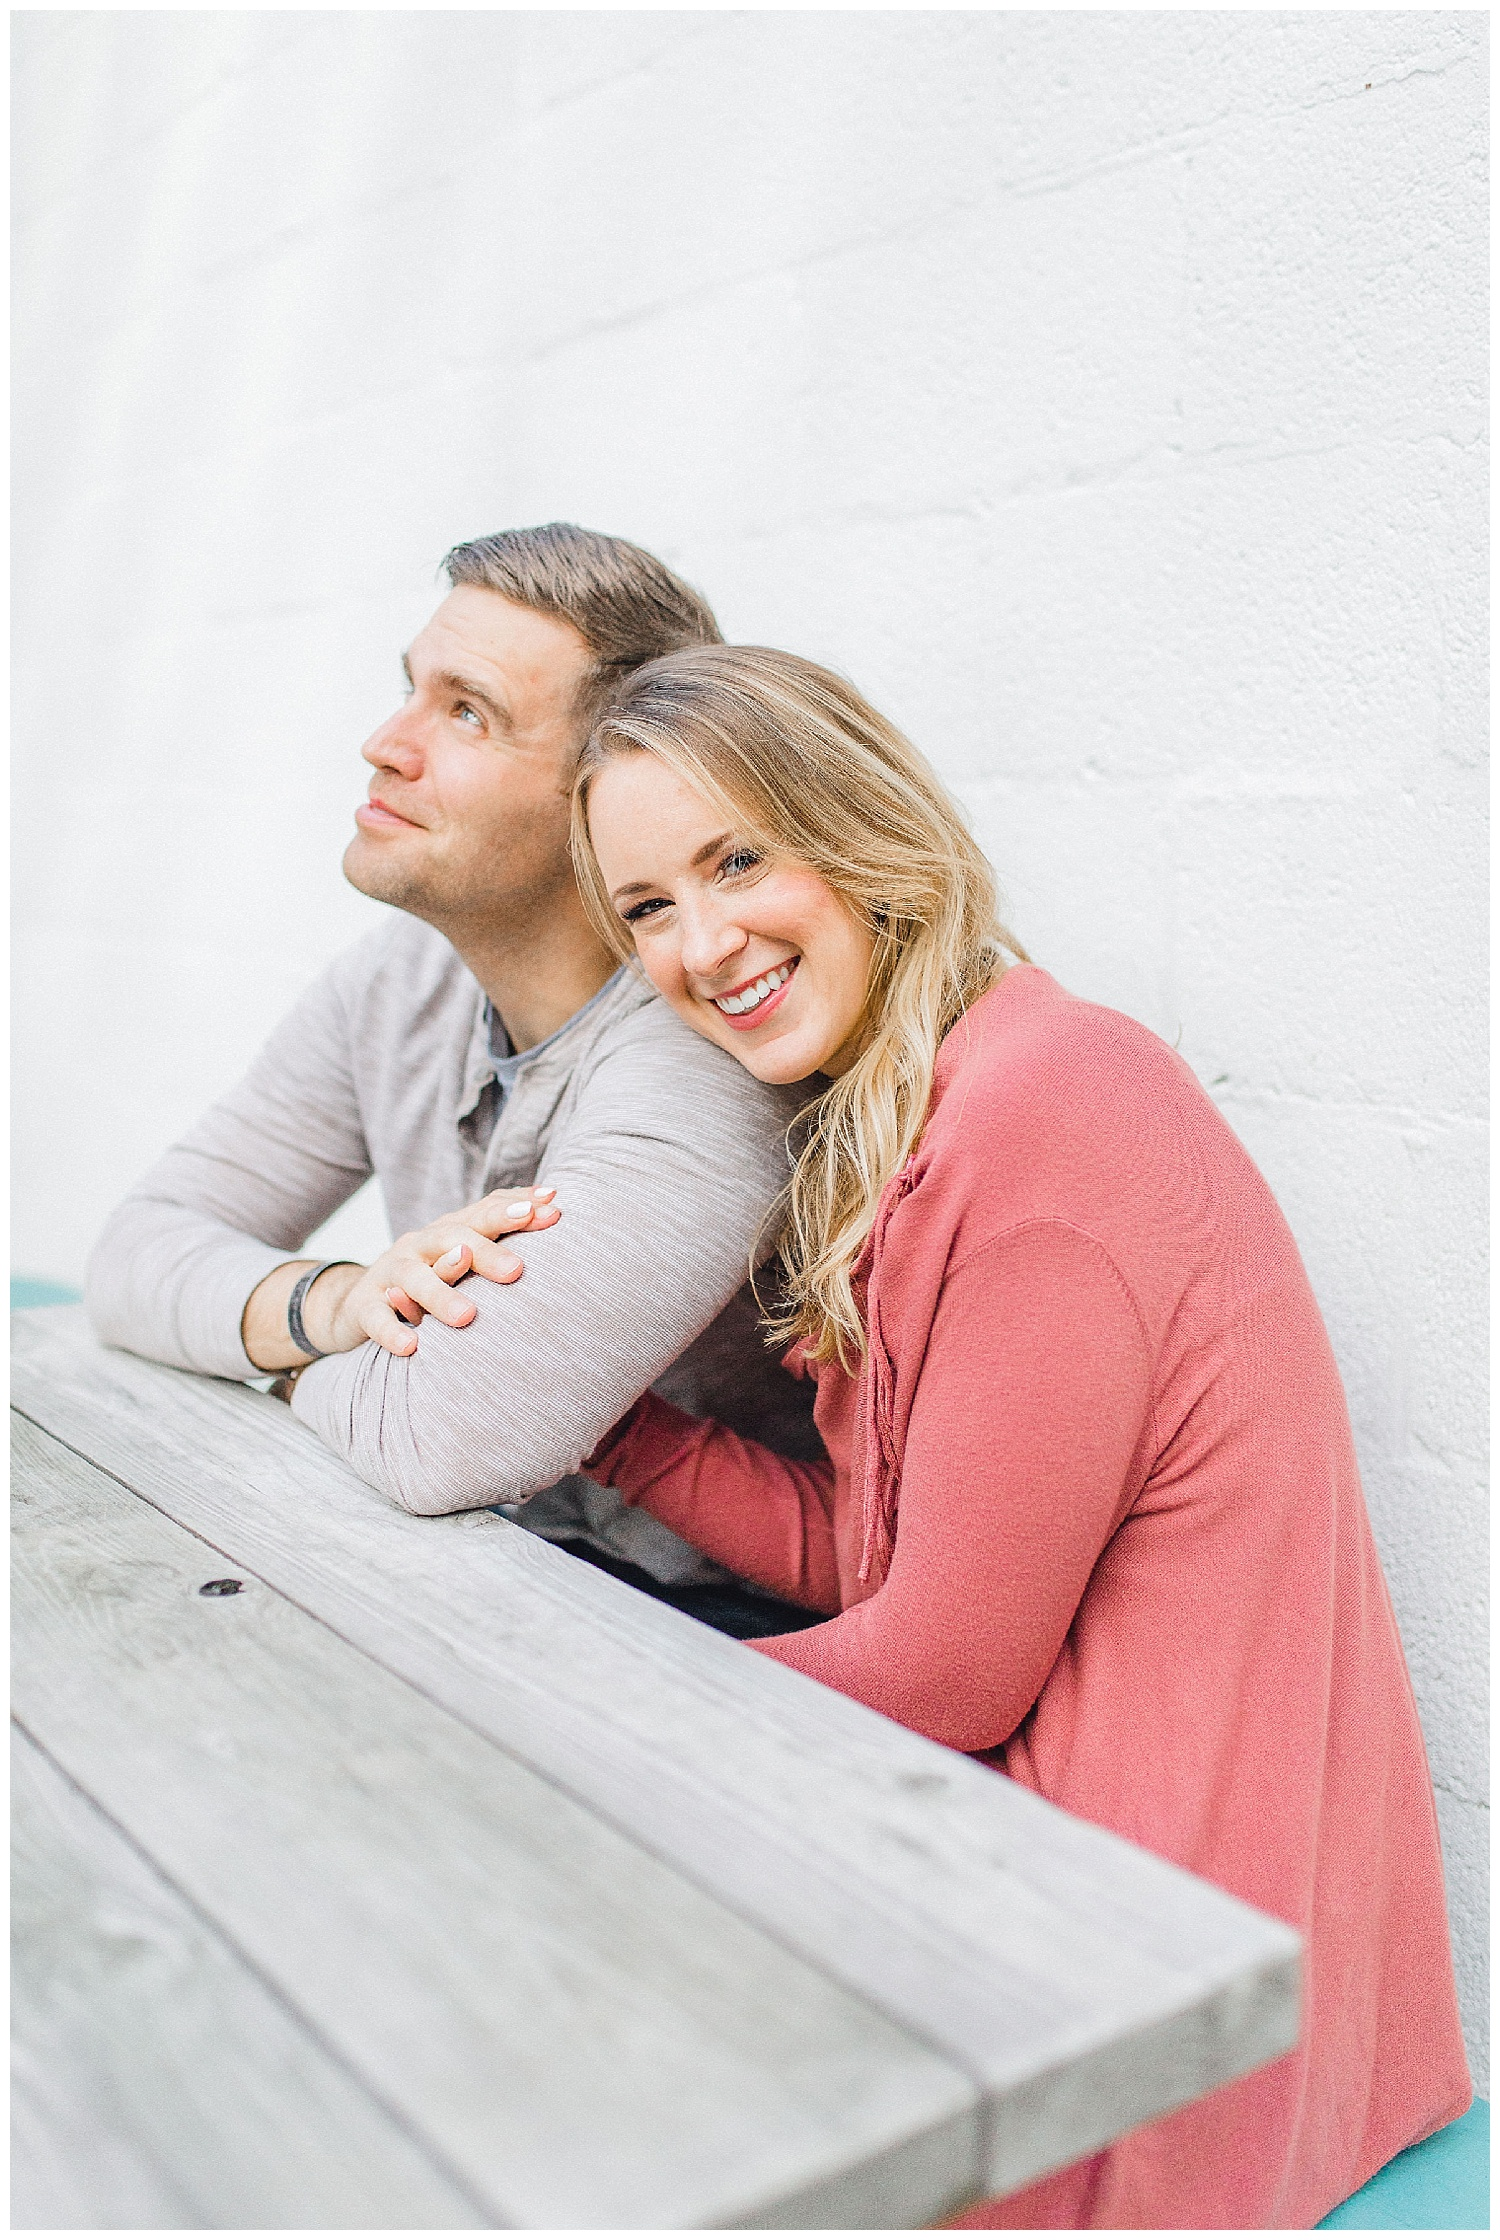 ERC_0847_Downtown Nashville Engagement Session at Barista Parlor | Emma Rose Company Wedding Photographer | Outfit Inspiration for Engagement Session | Kindred Light and Airy Photographer.jpg